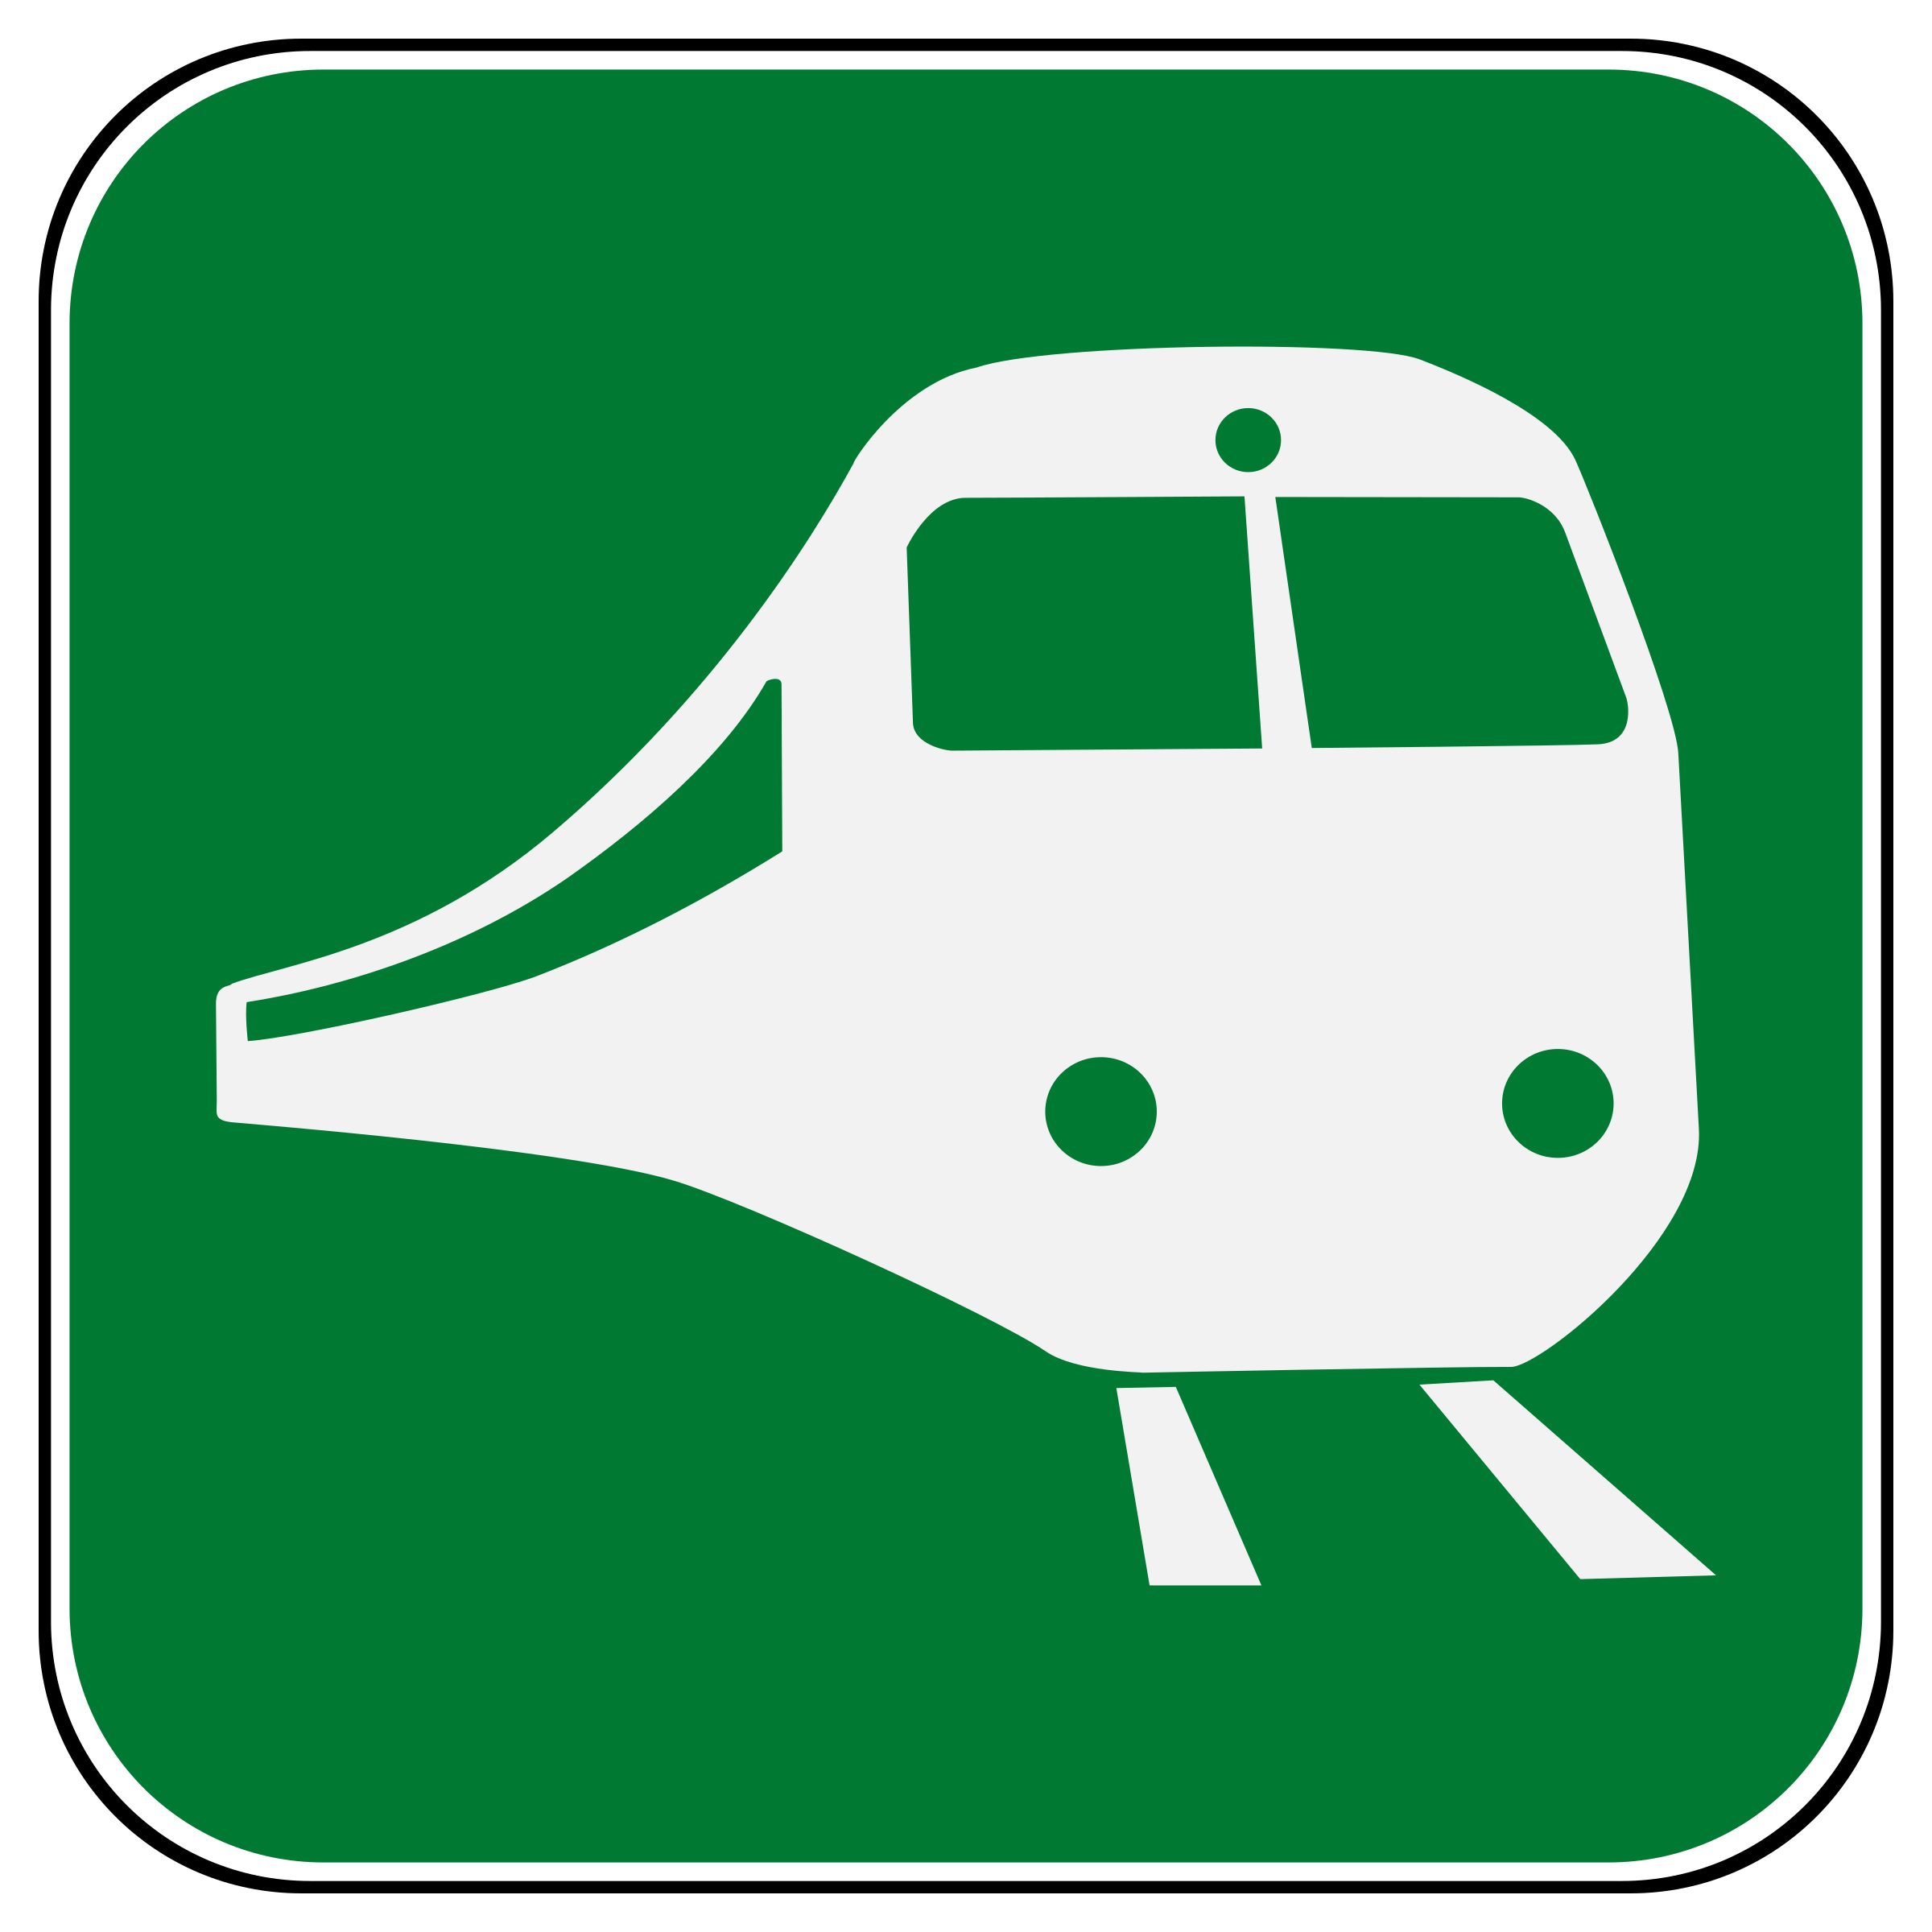 2400x2400 Railroad Station Icons Png